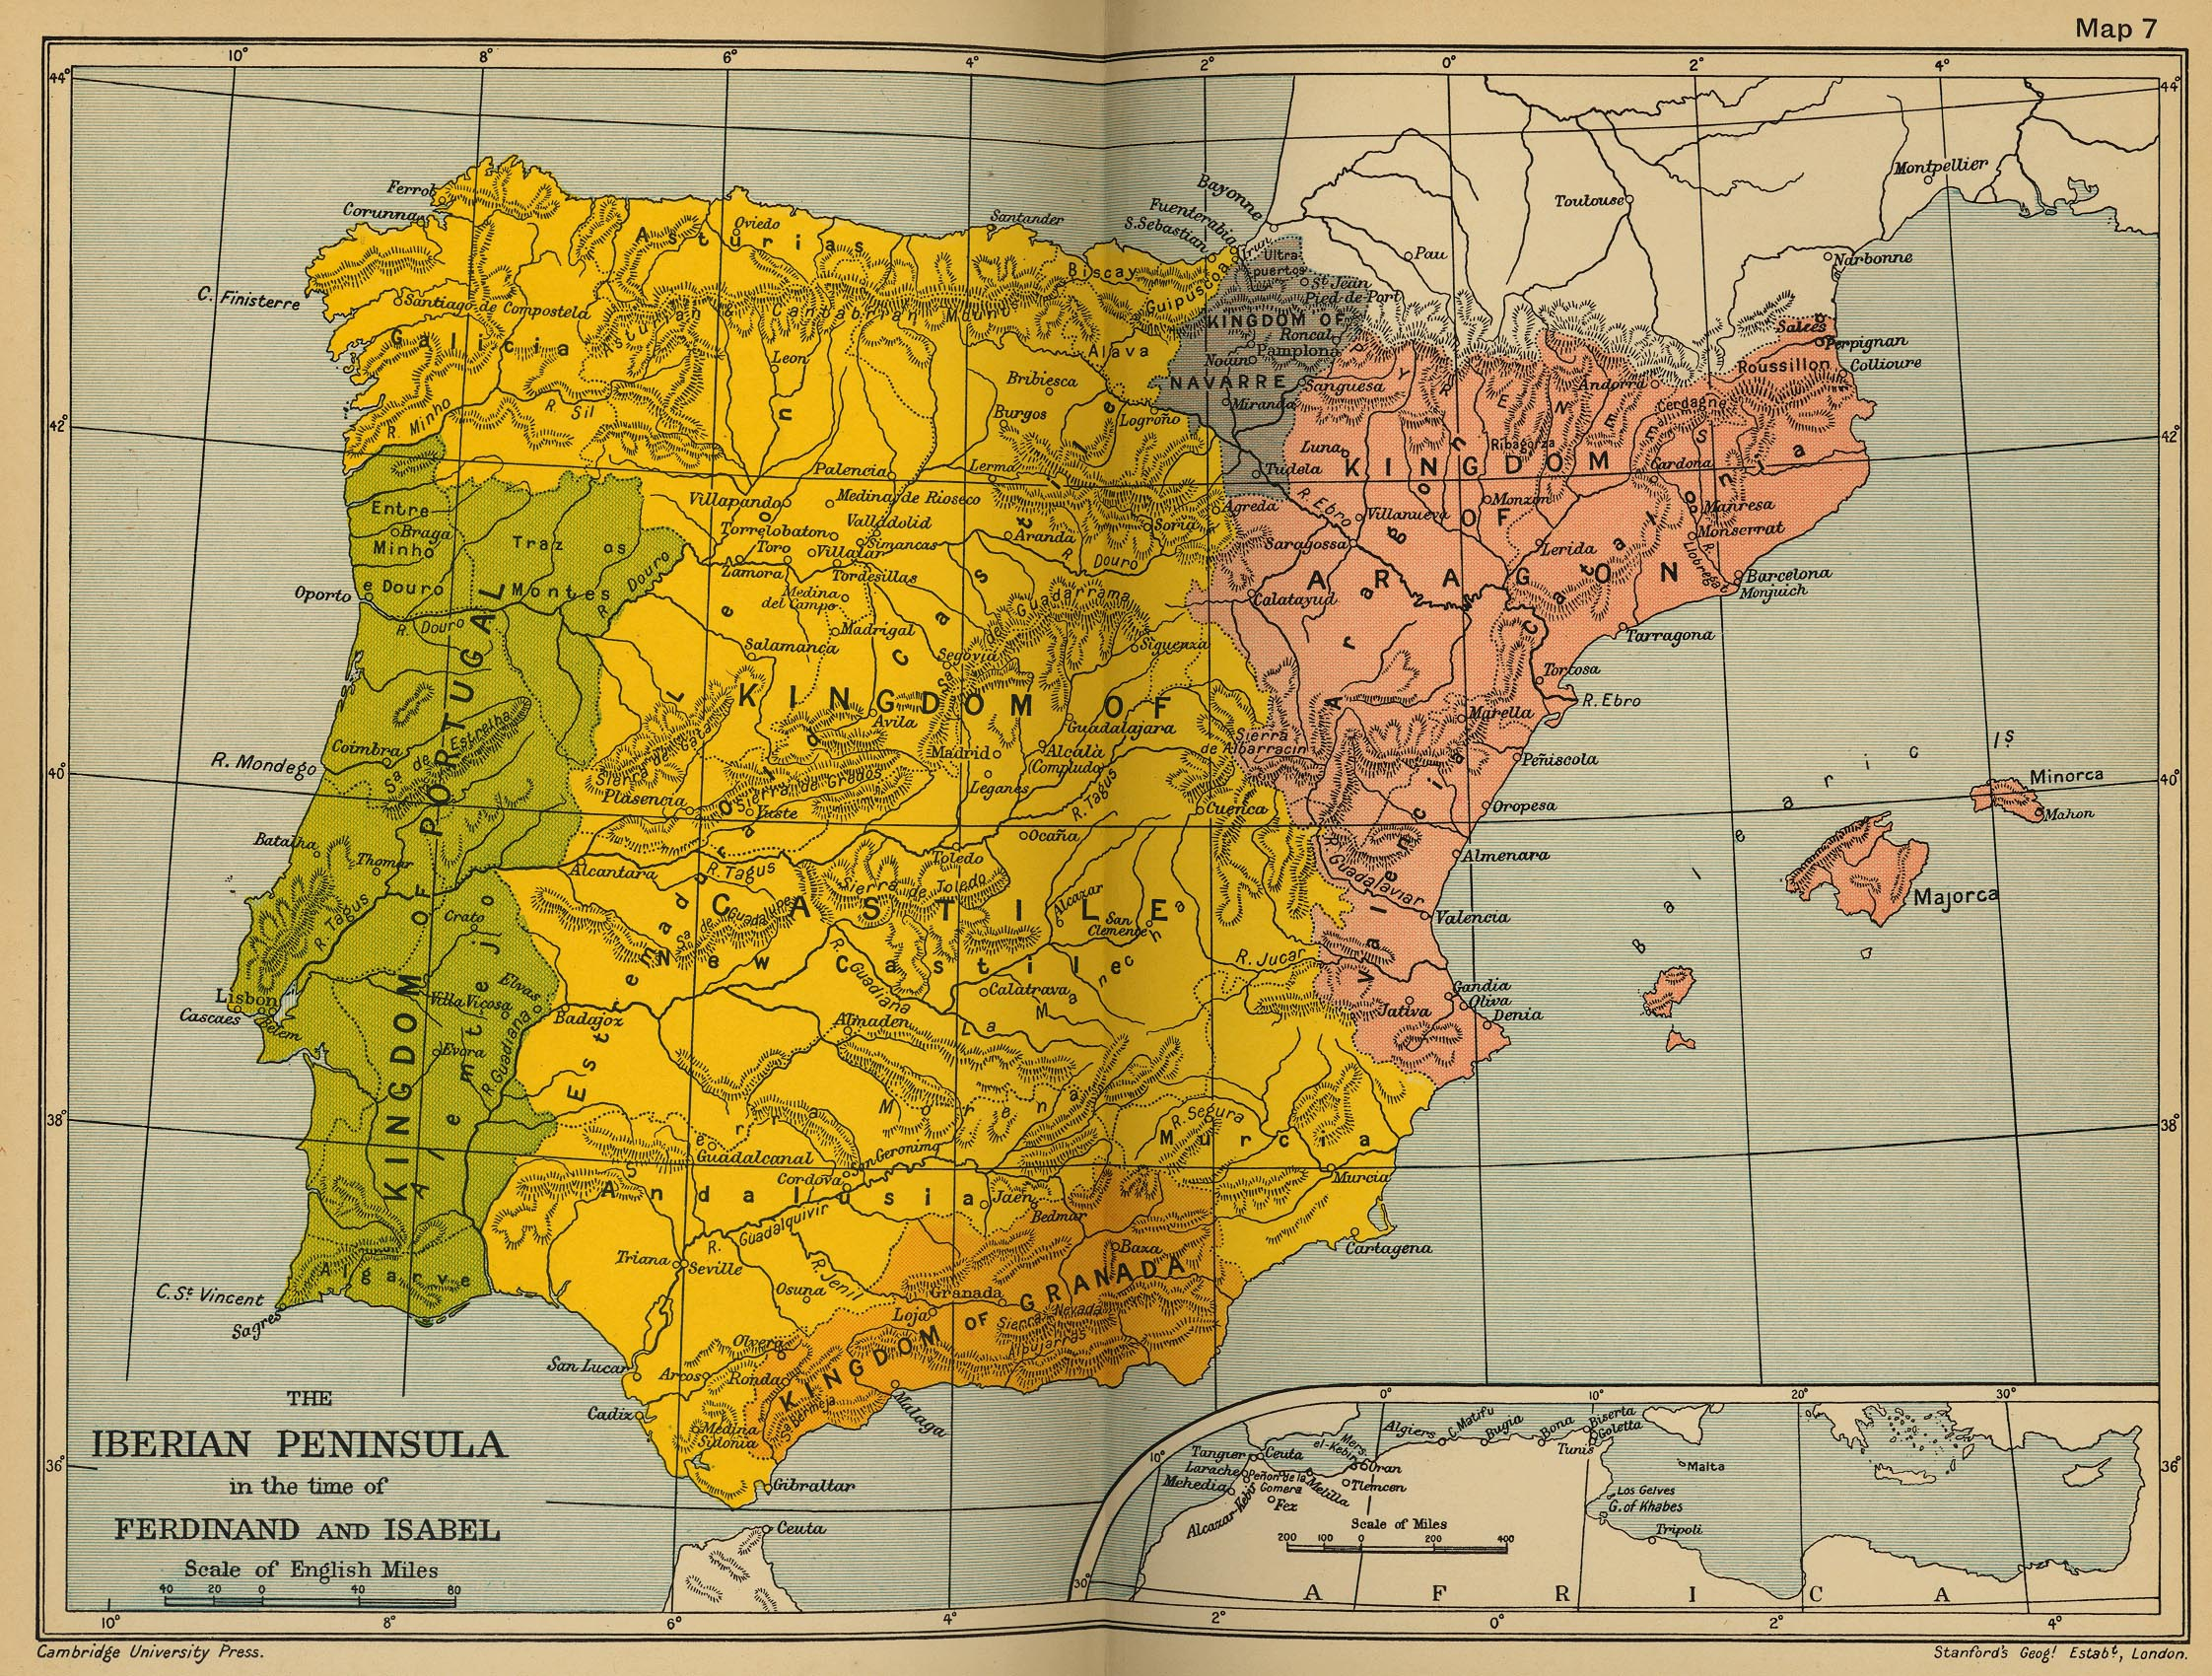 The Iberian Peninsula at the time of Ferdinand and Isabel